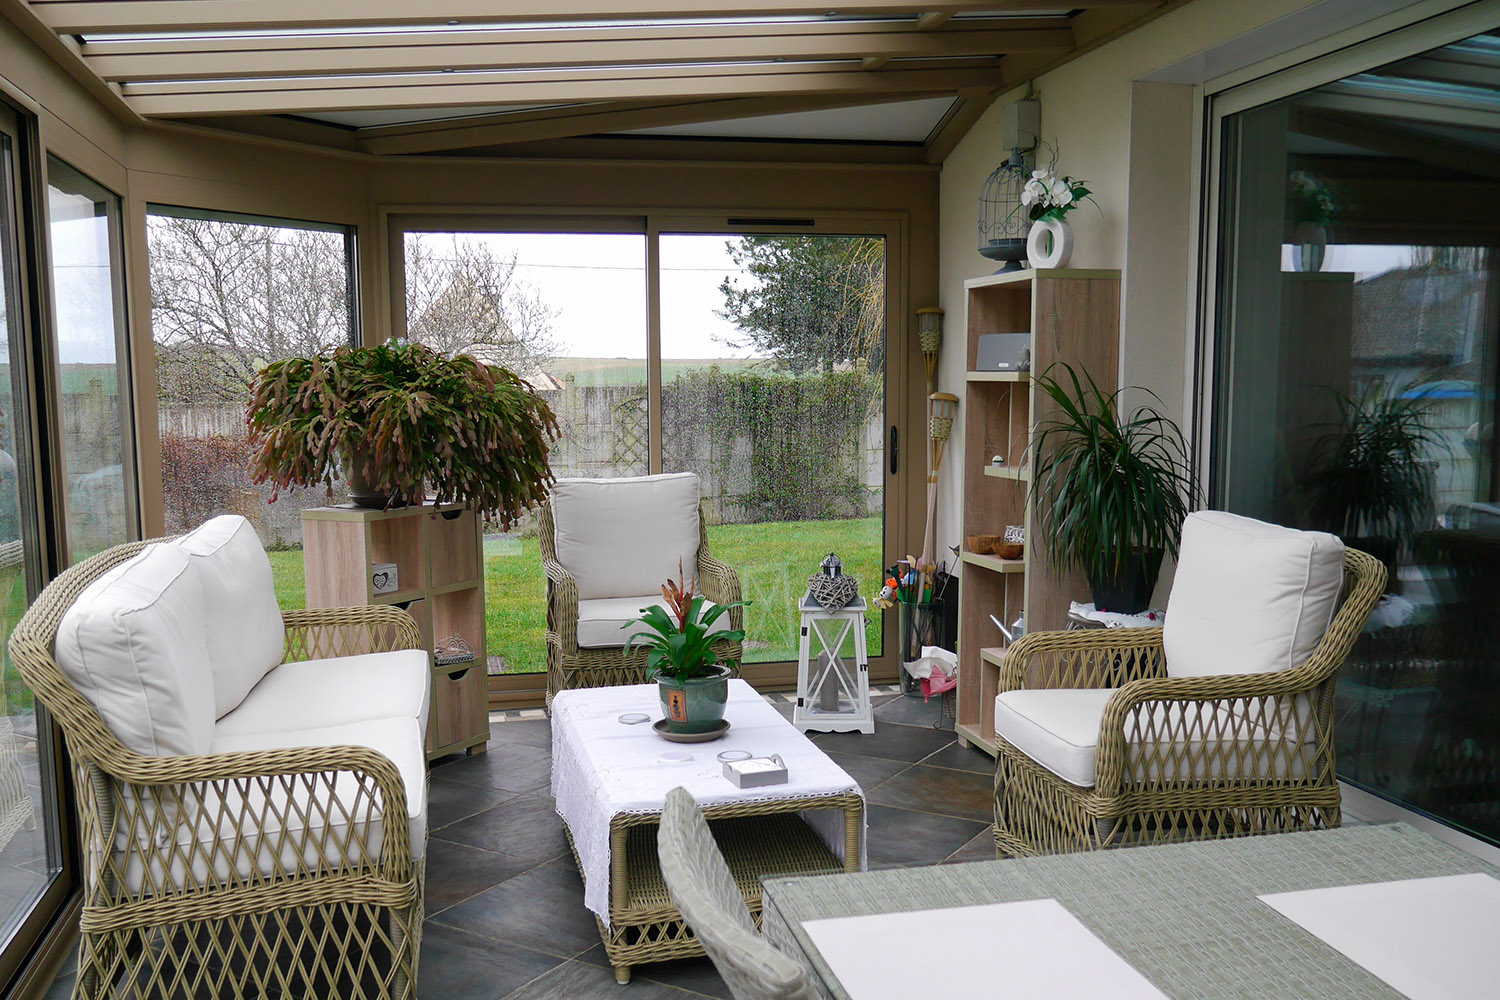 Awesome salon de jardin interieur exterieur pictures for Interieur 65